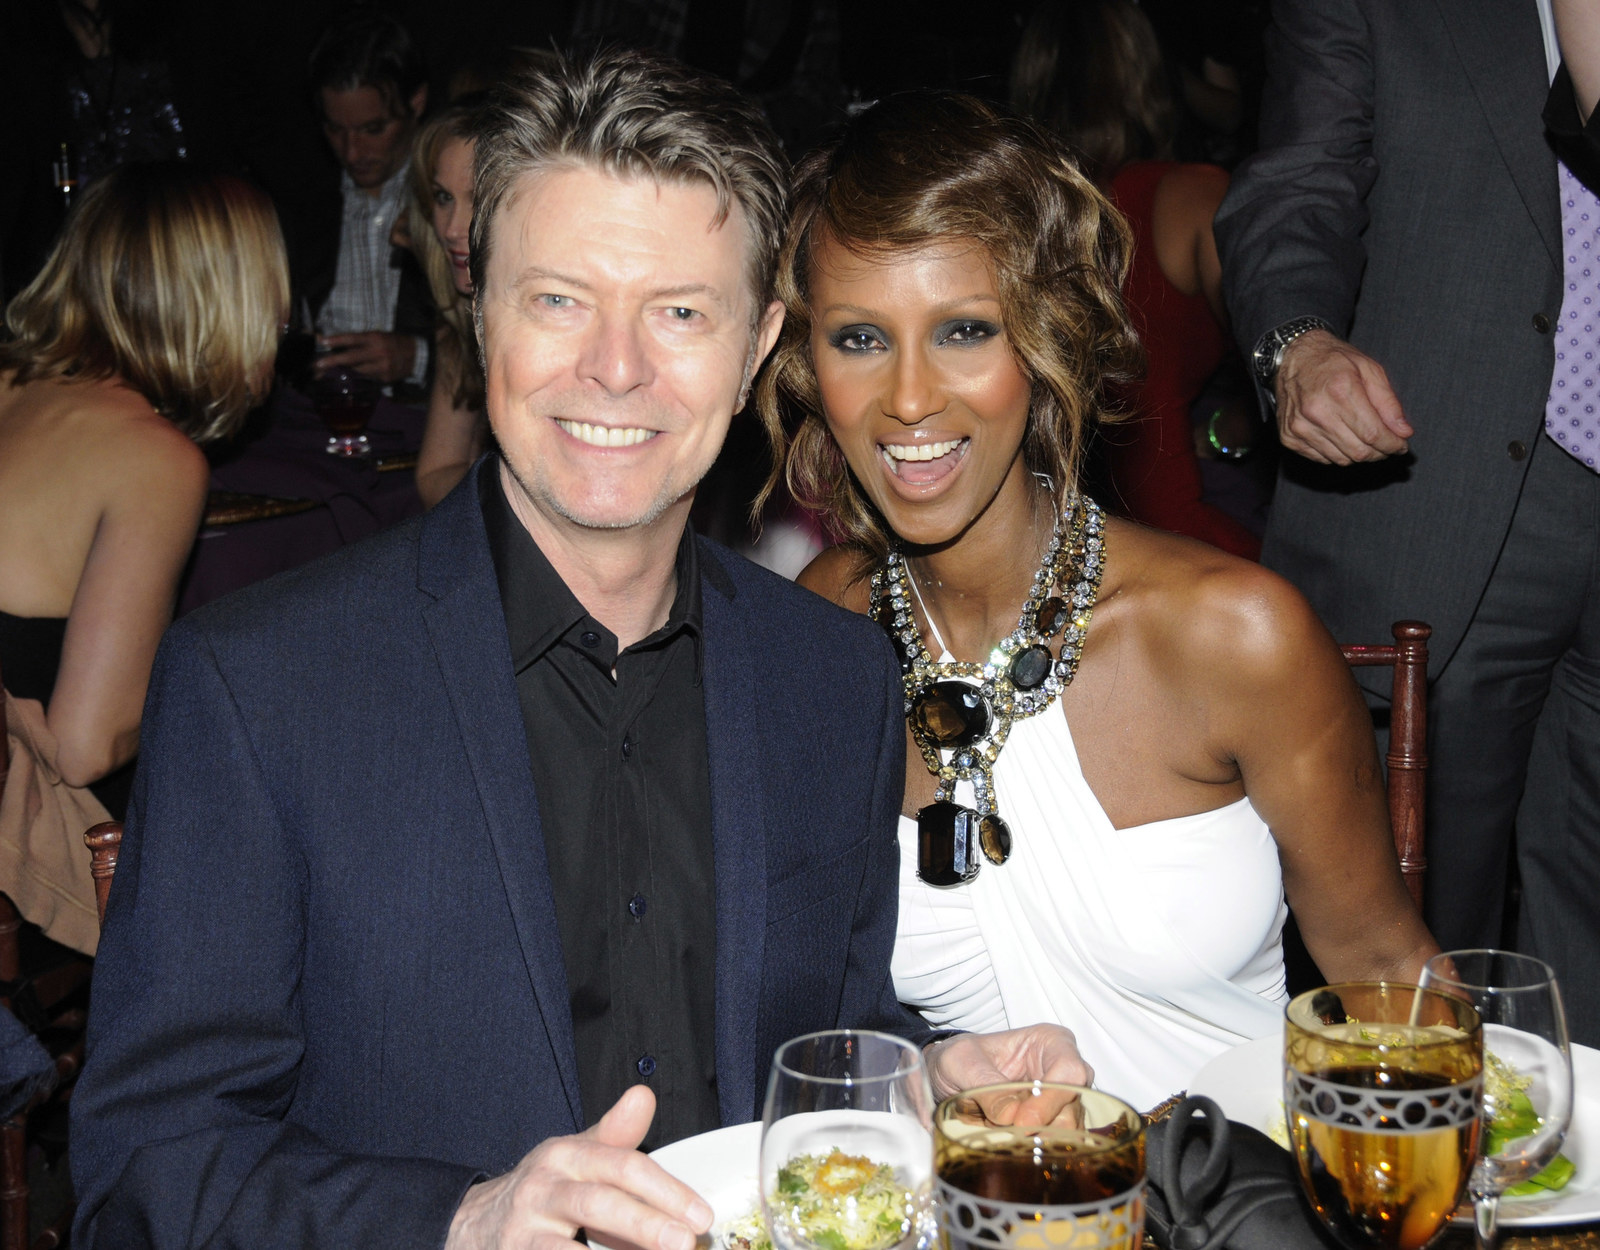 She was also married to iconic musician David Bowie from 1992 to 2016.